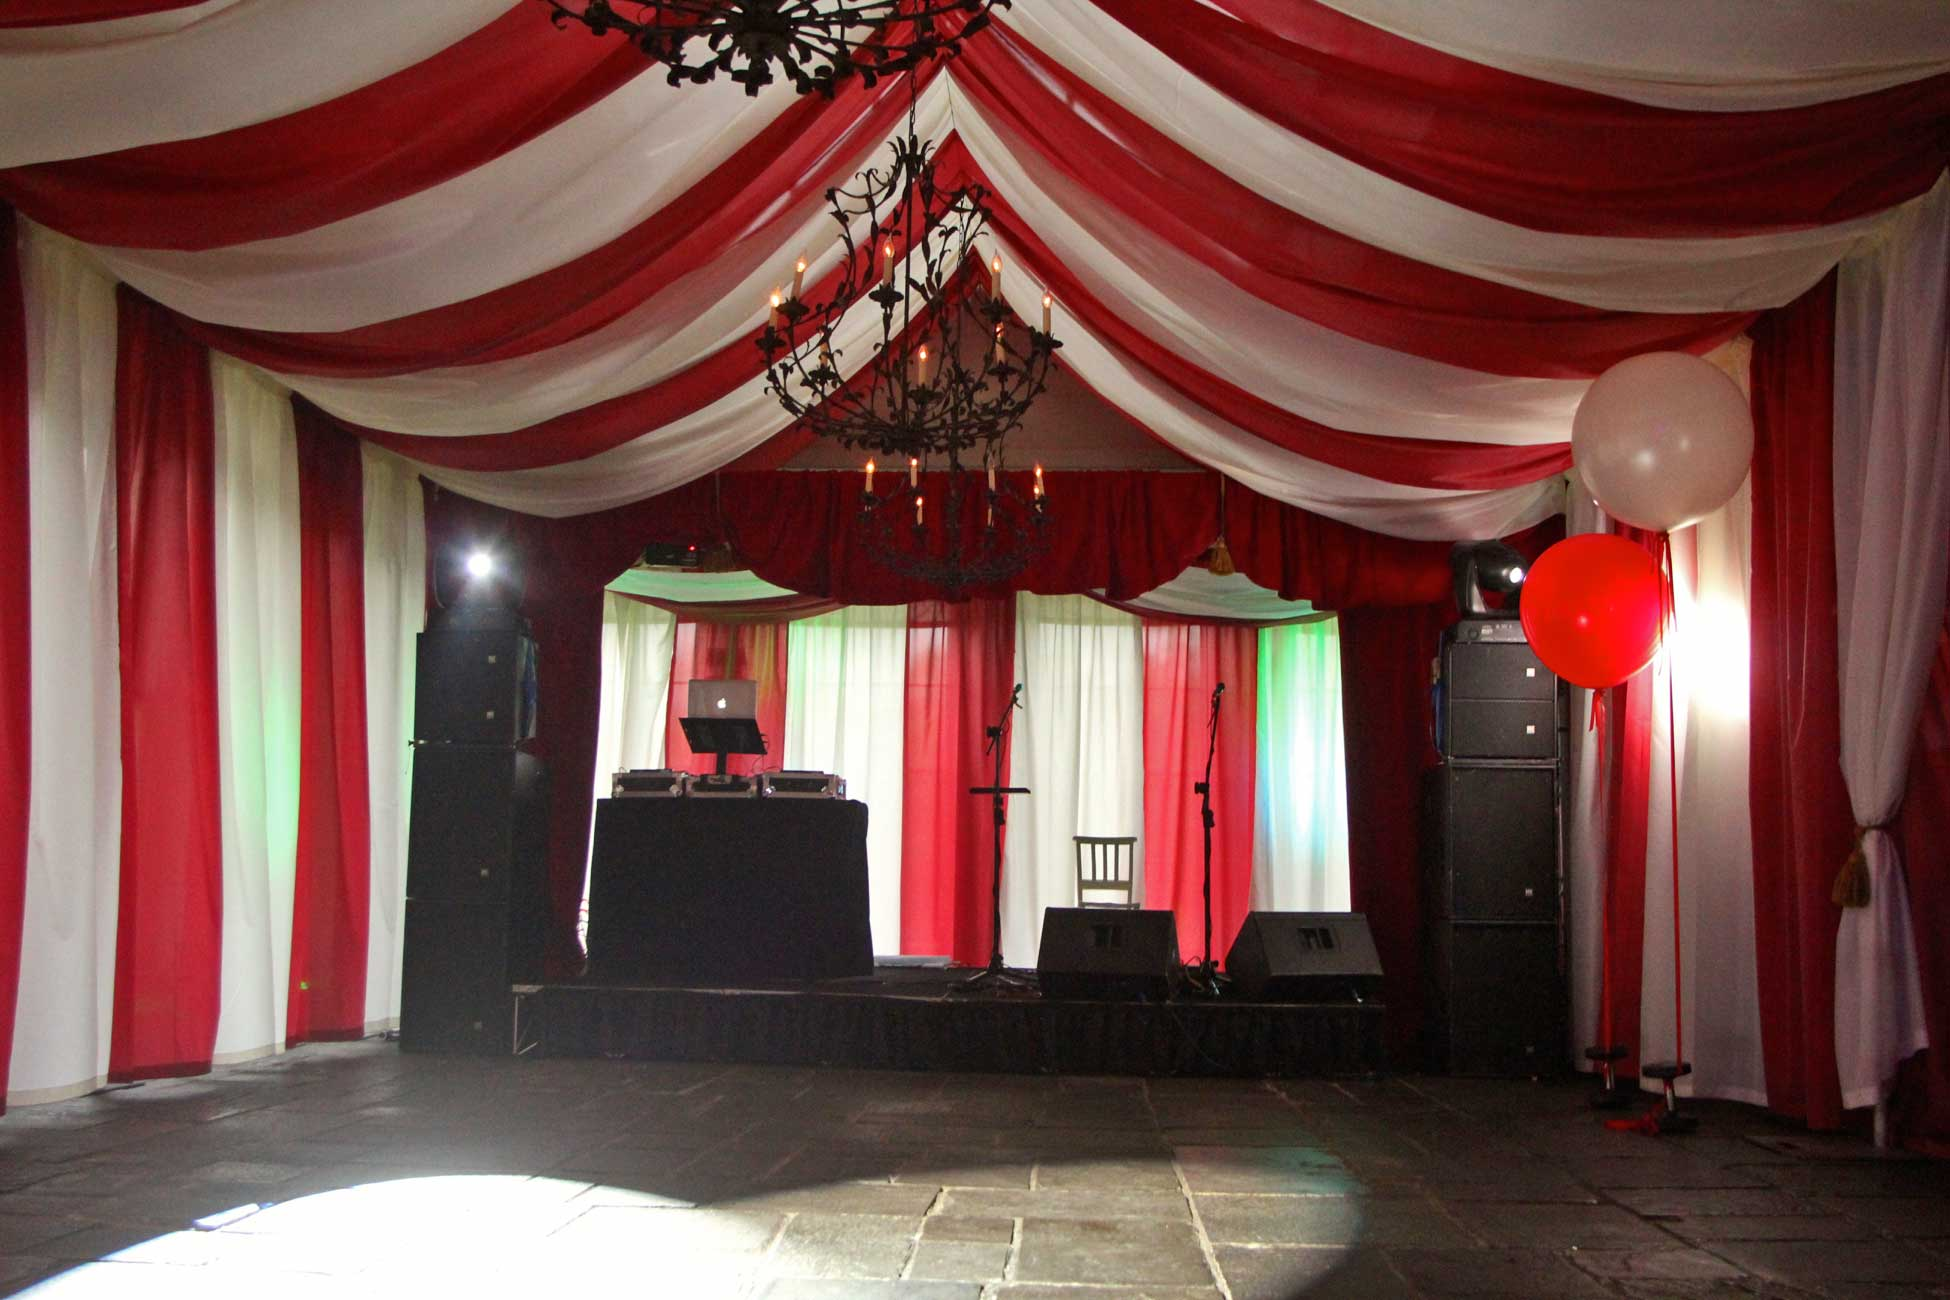 Image of a circus themed party with big top, stage and dj decks